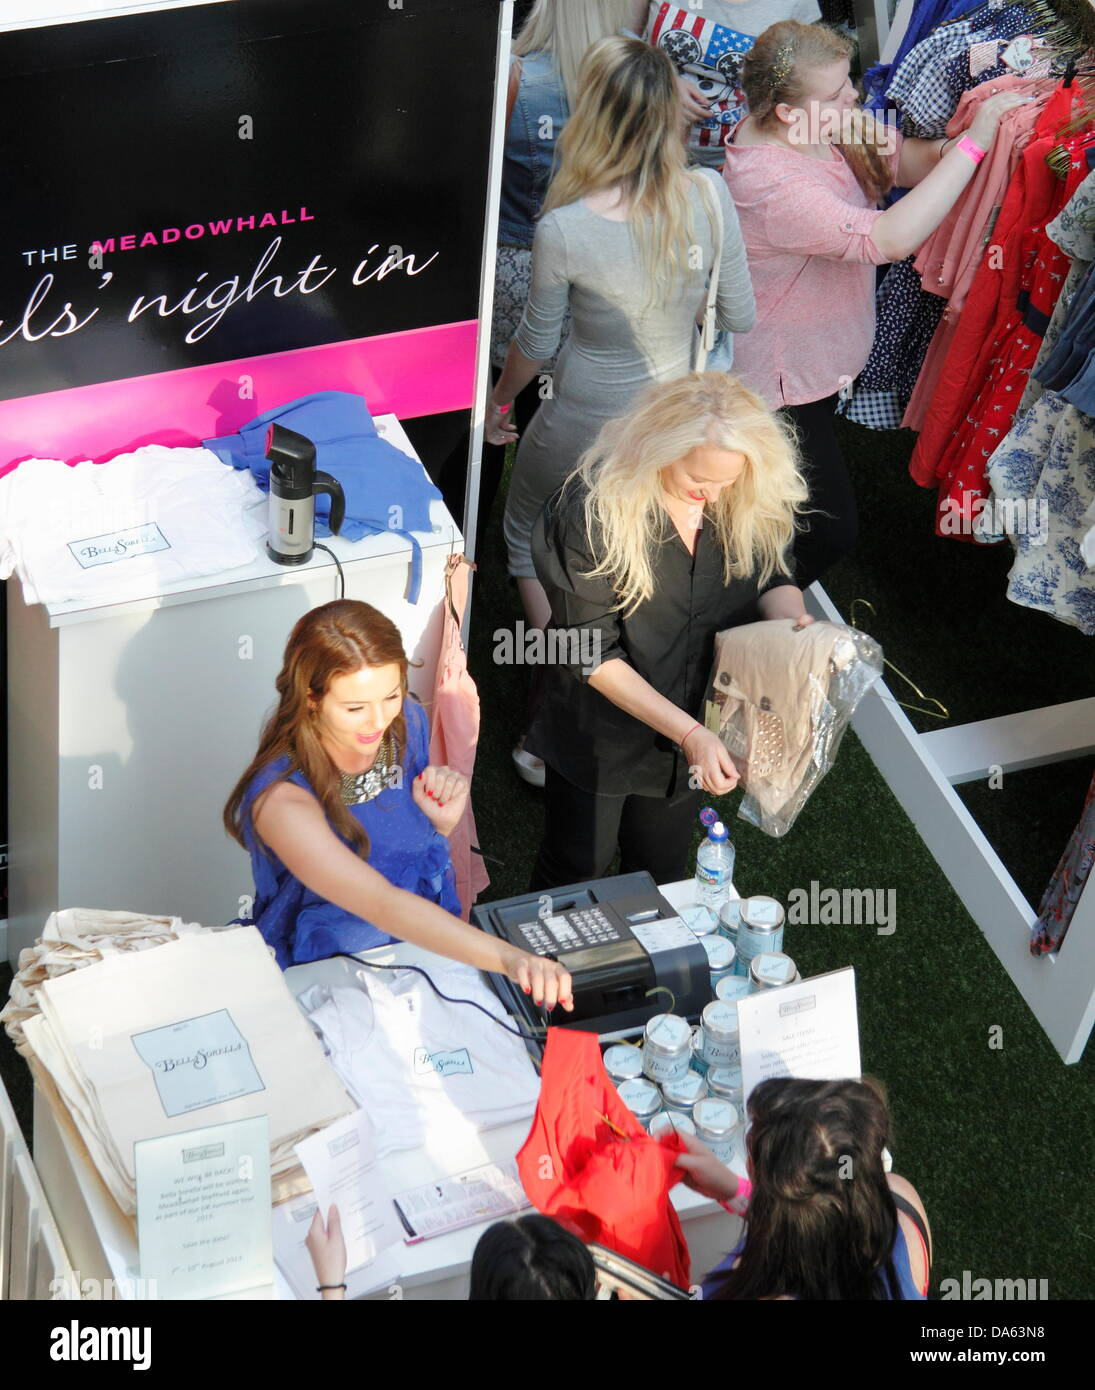 Sheffield, UK. 4th July 2013. FIRST LOOK: Lydia Bright and her mother, Debbie Douglas debut Bella Sorella pop-up - Stock Image